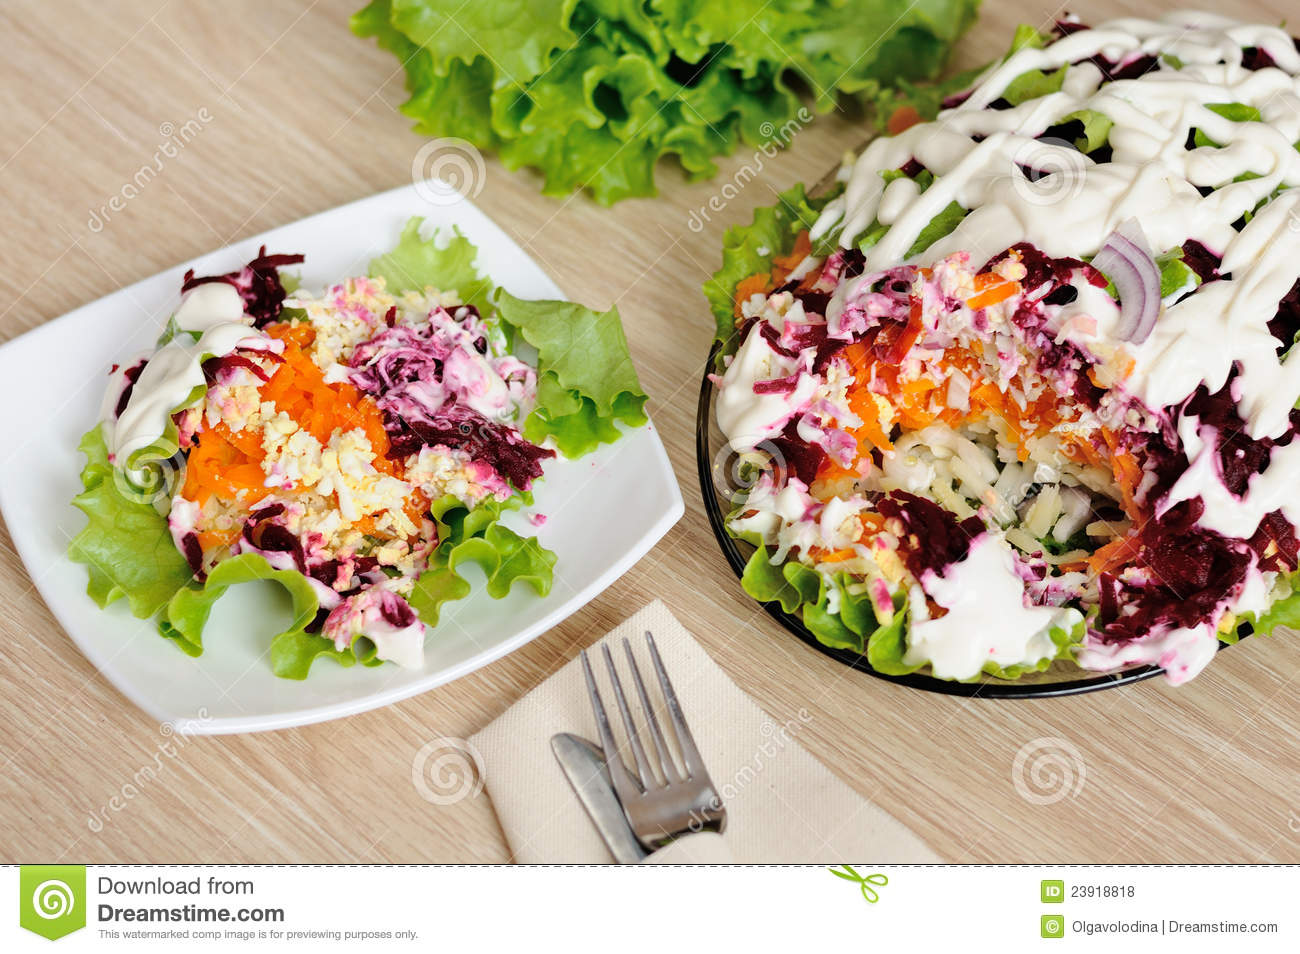 Royalty Free Stock Photos: Salad with herring and vegetables